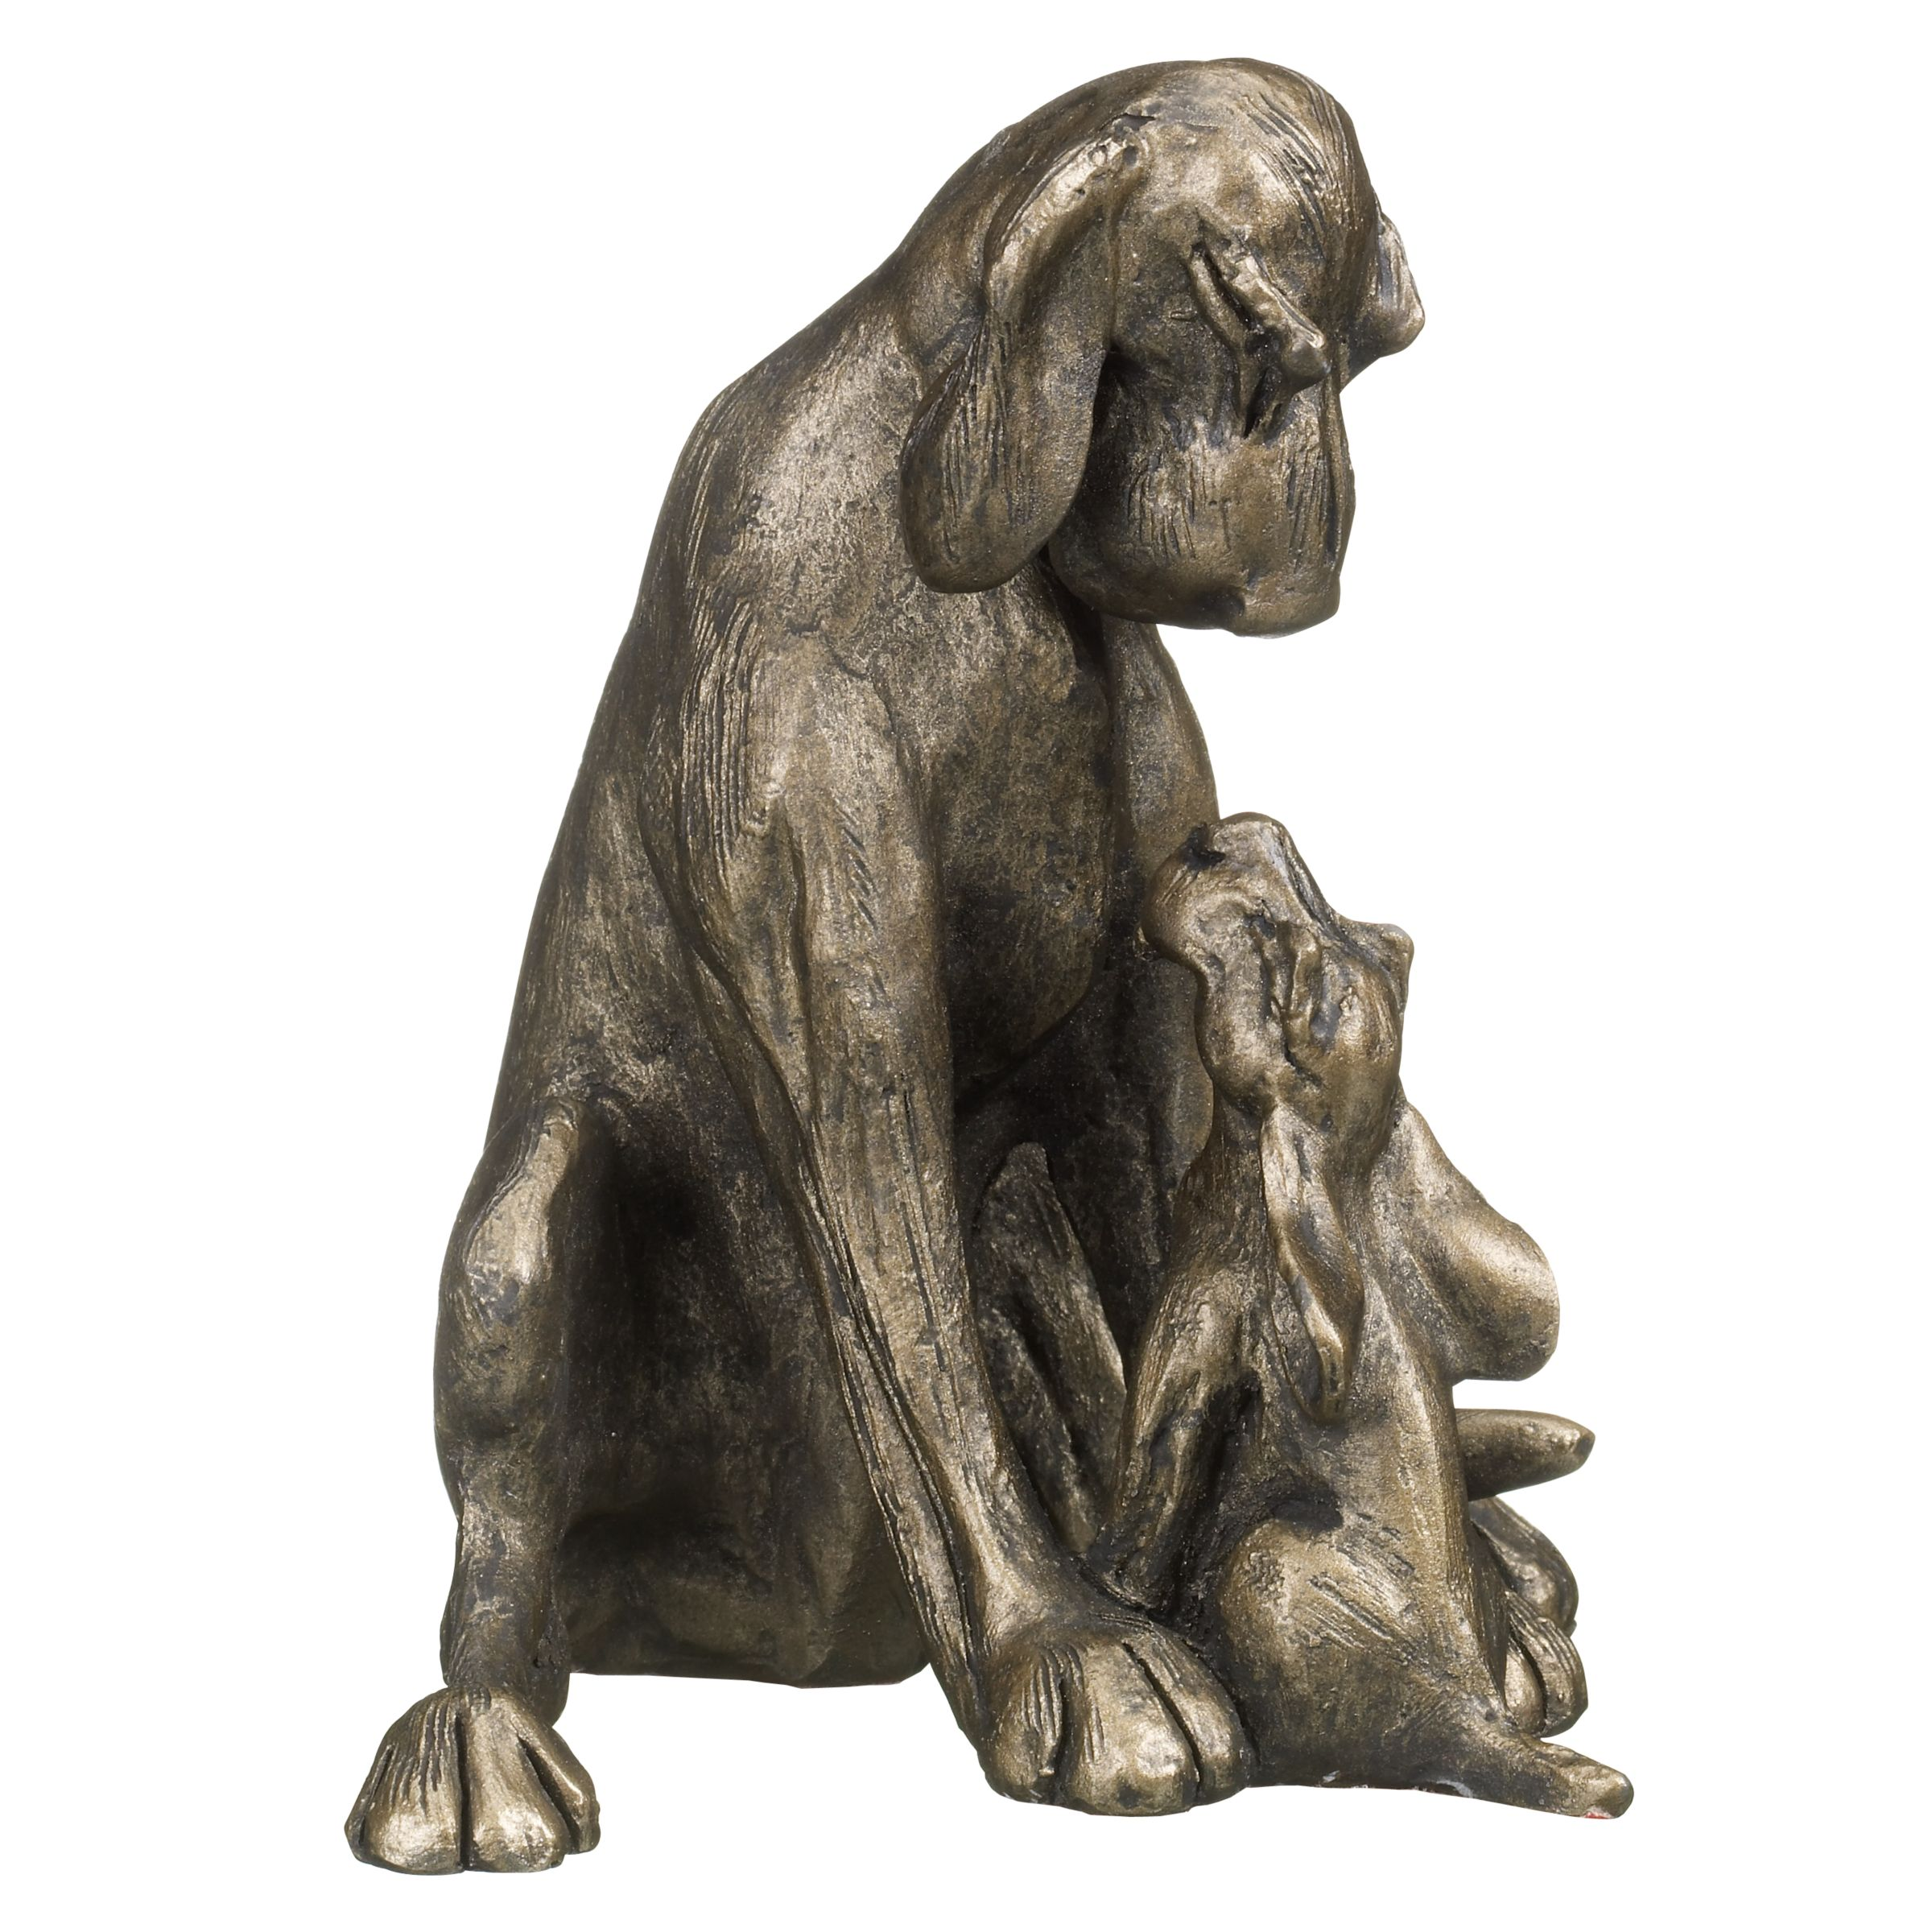 Frith Sculpture Amber and Pup, by Harriet Dunn